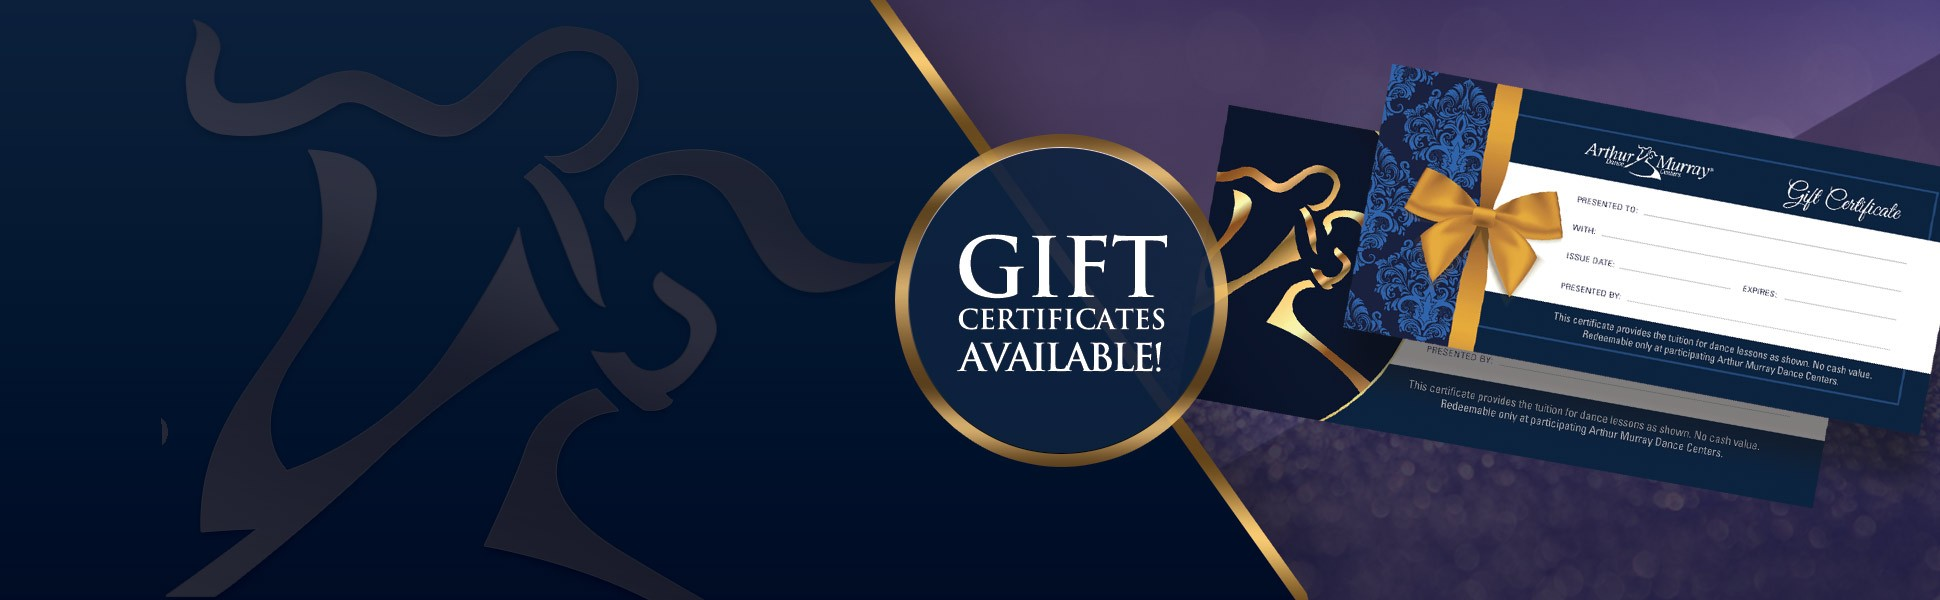 Gift Certificate Animated Banner